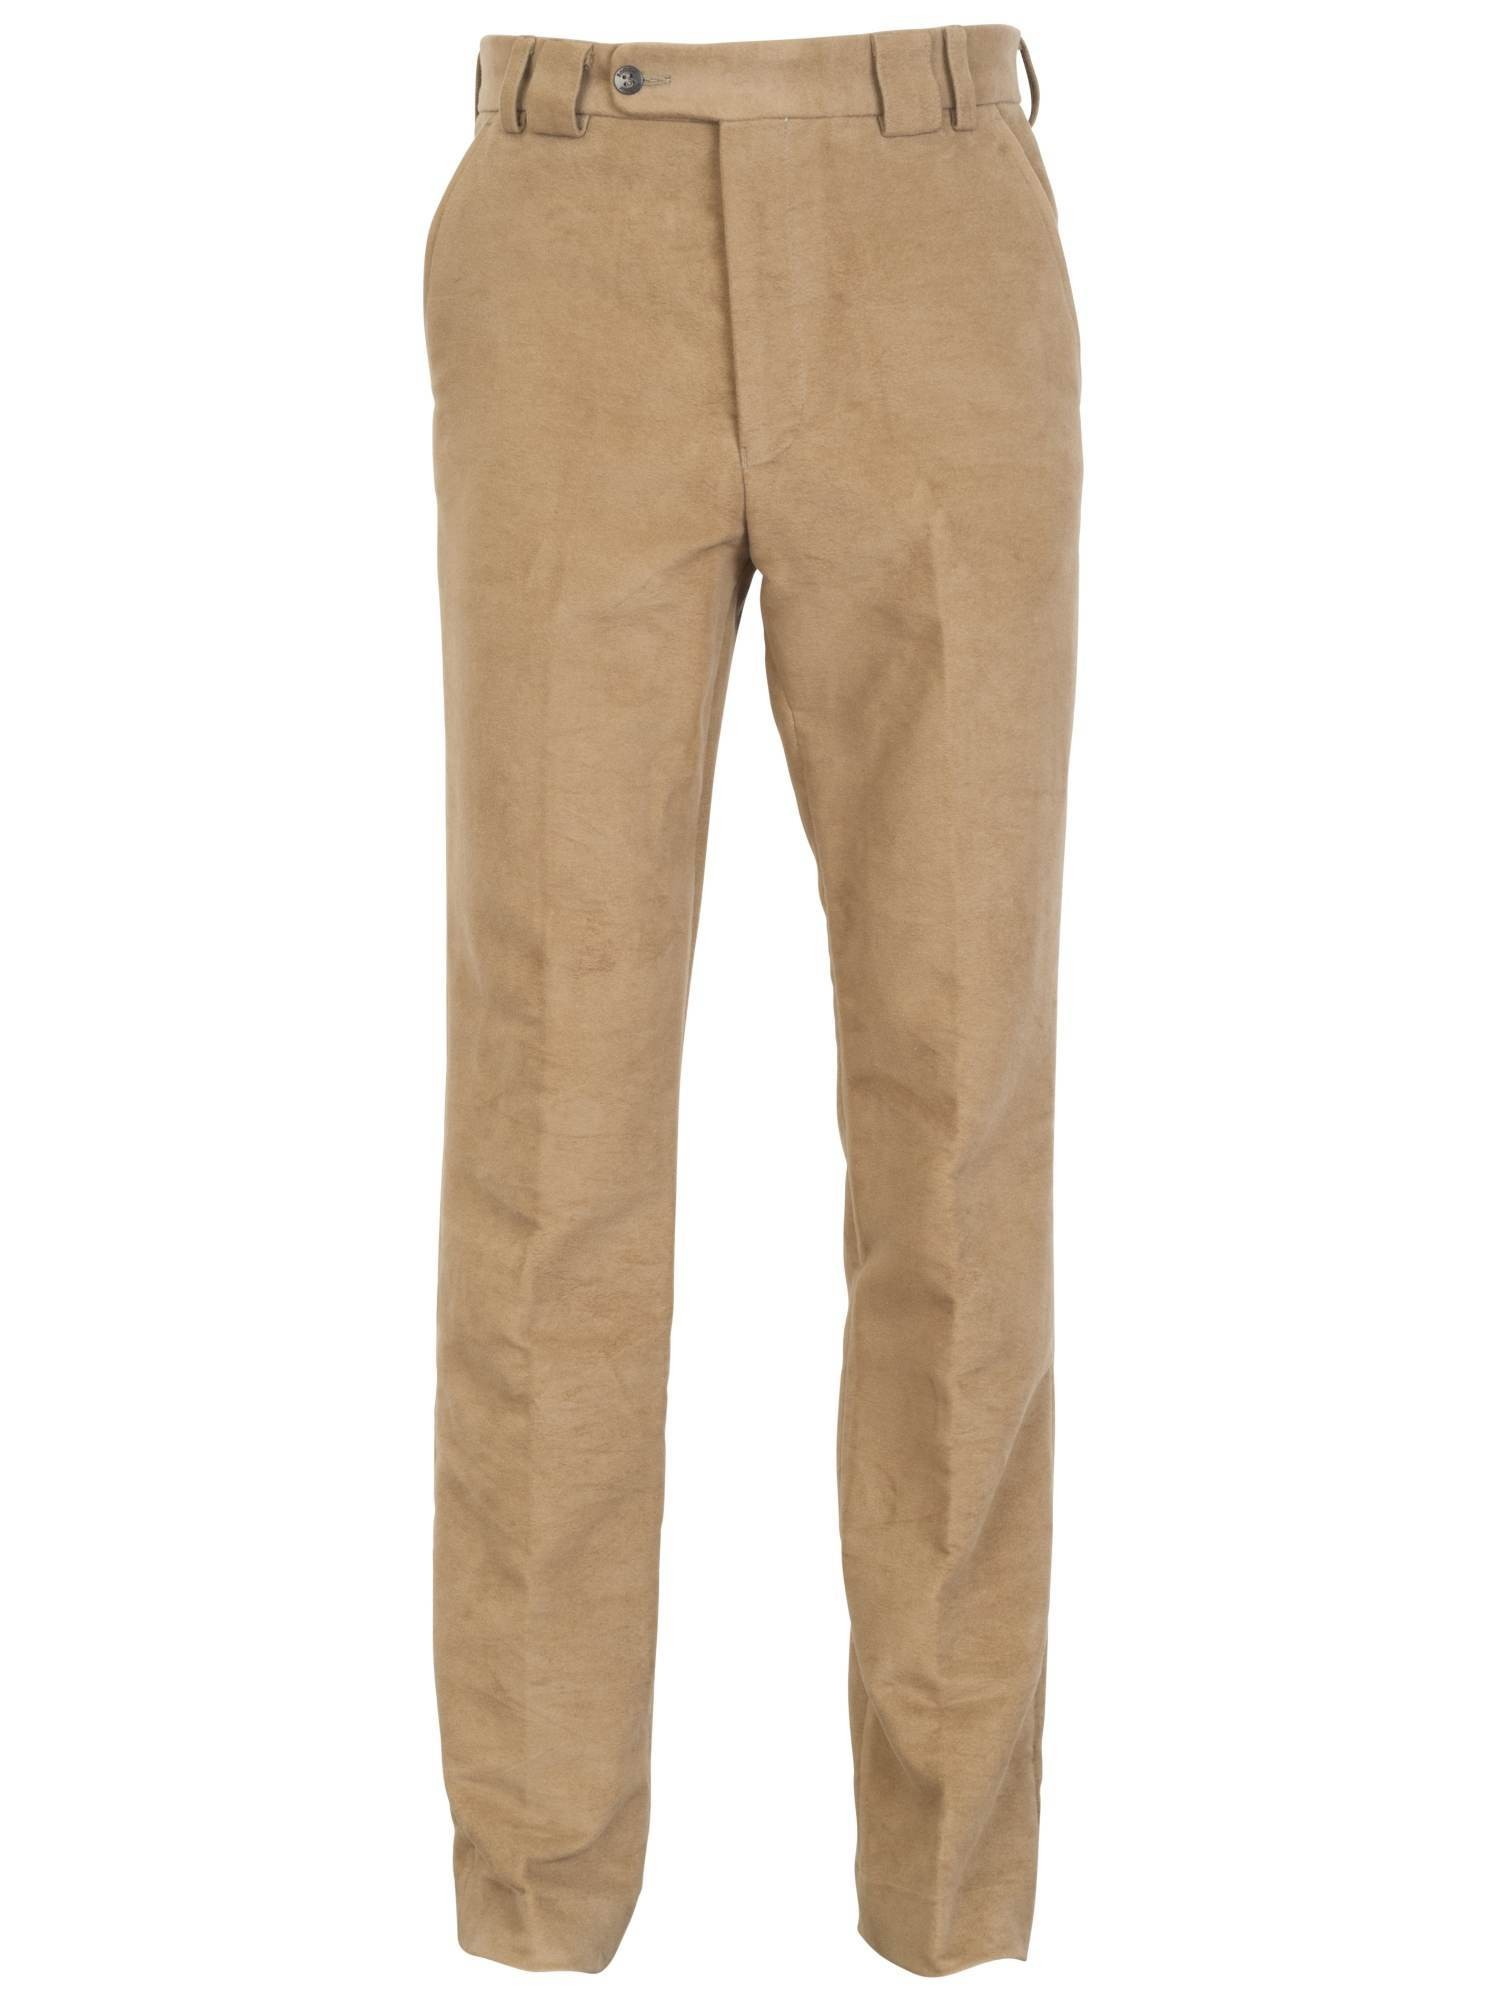 Green Trousers Brown Shoes